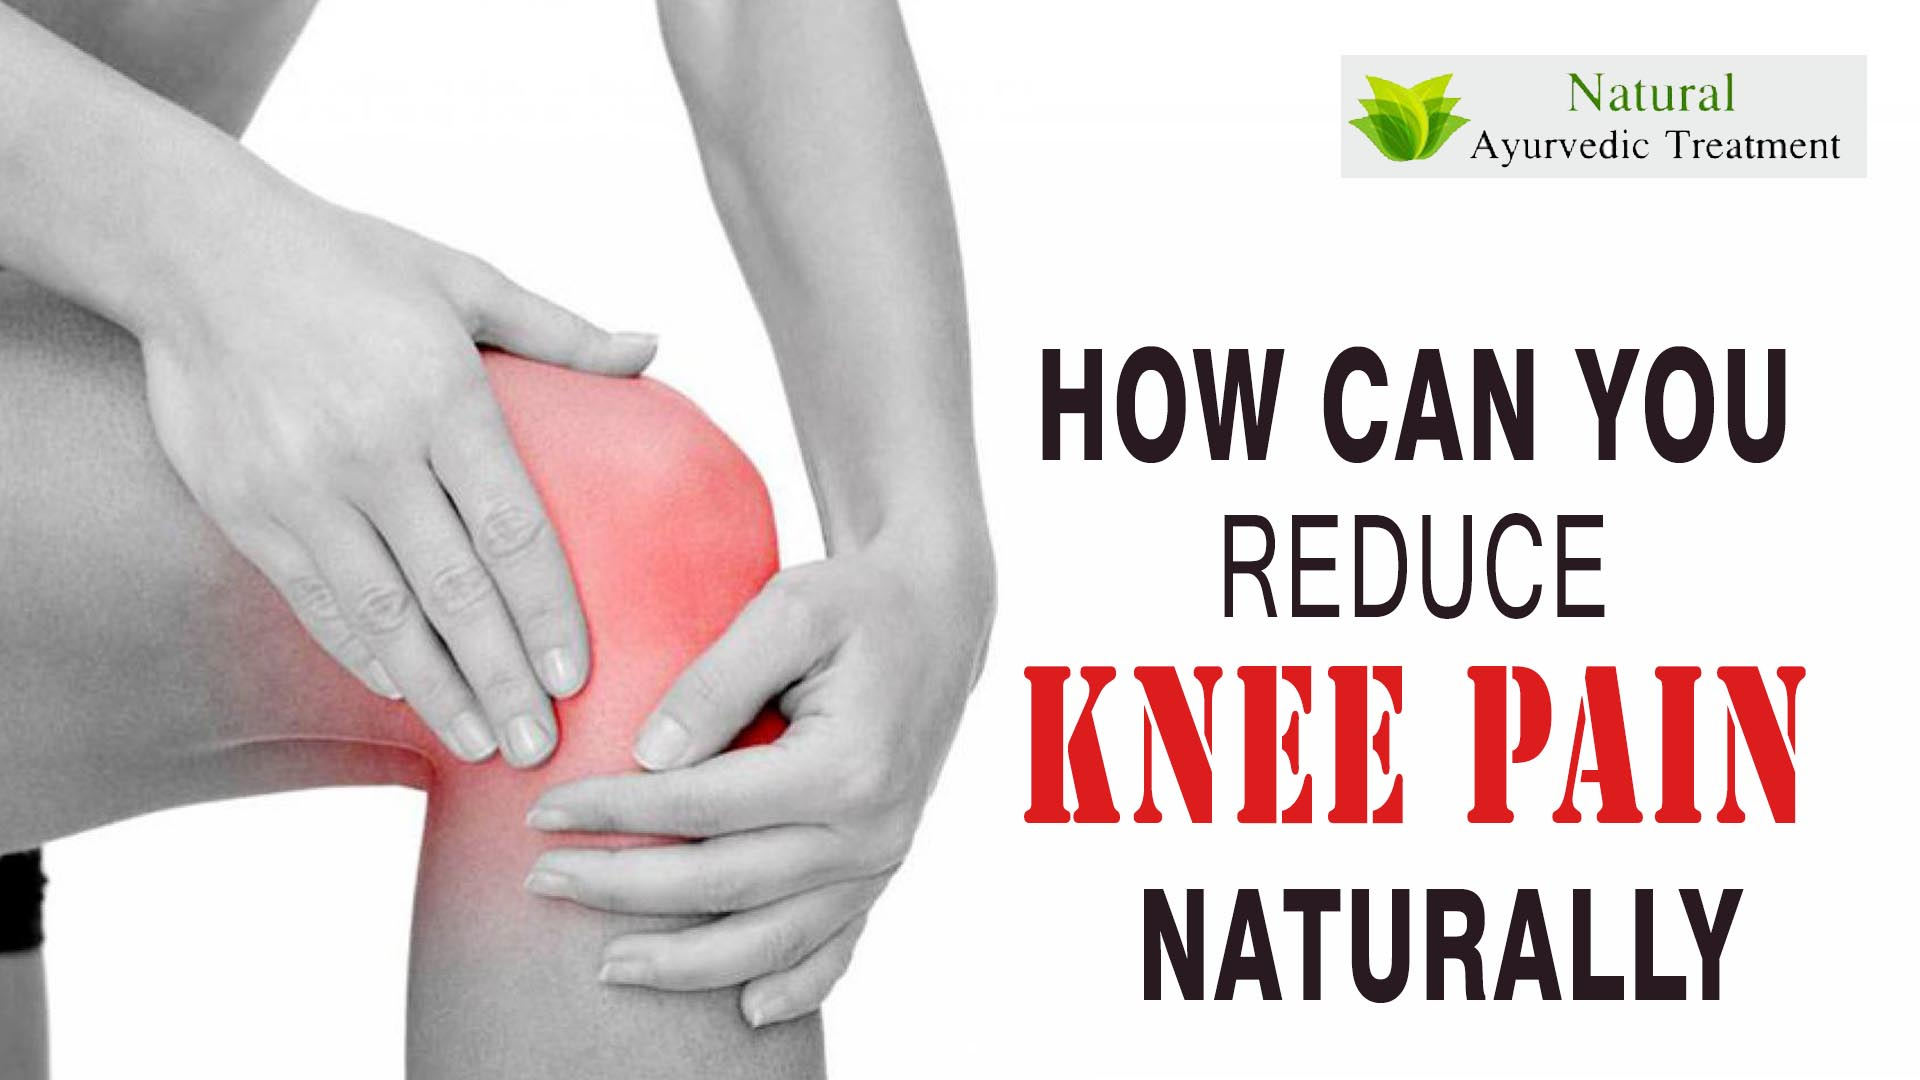 How Can You Reduce Knee Pain Naturally at Home?